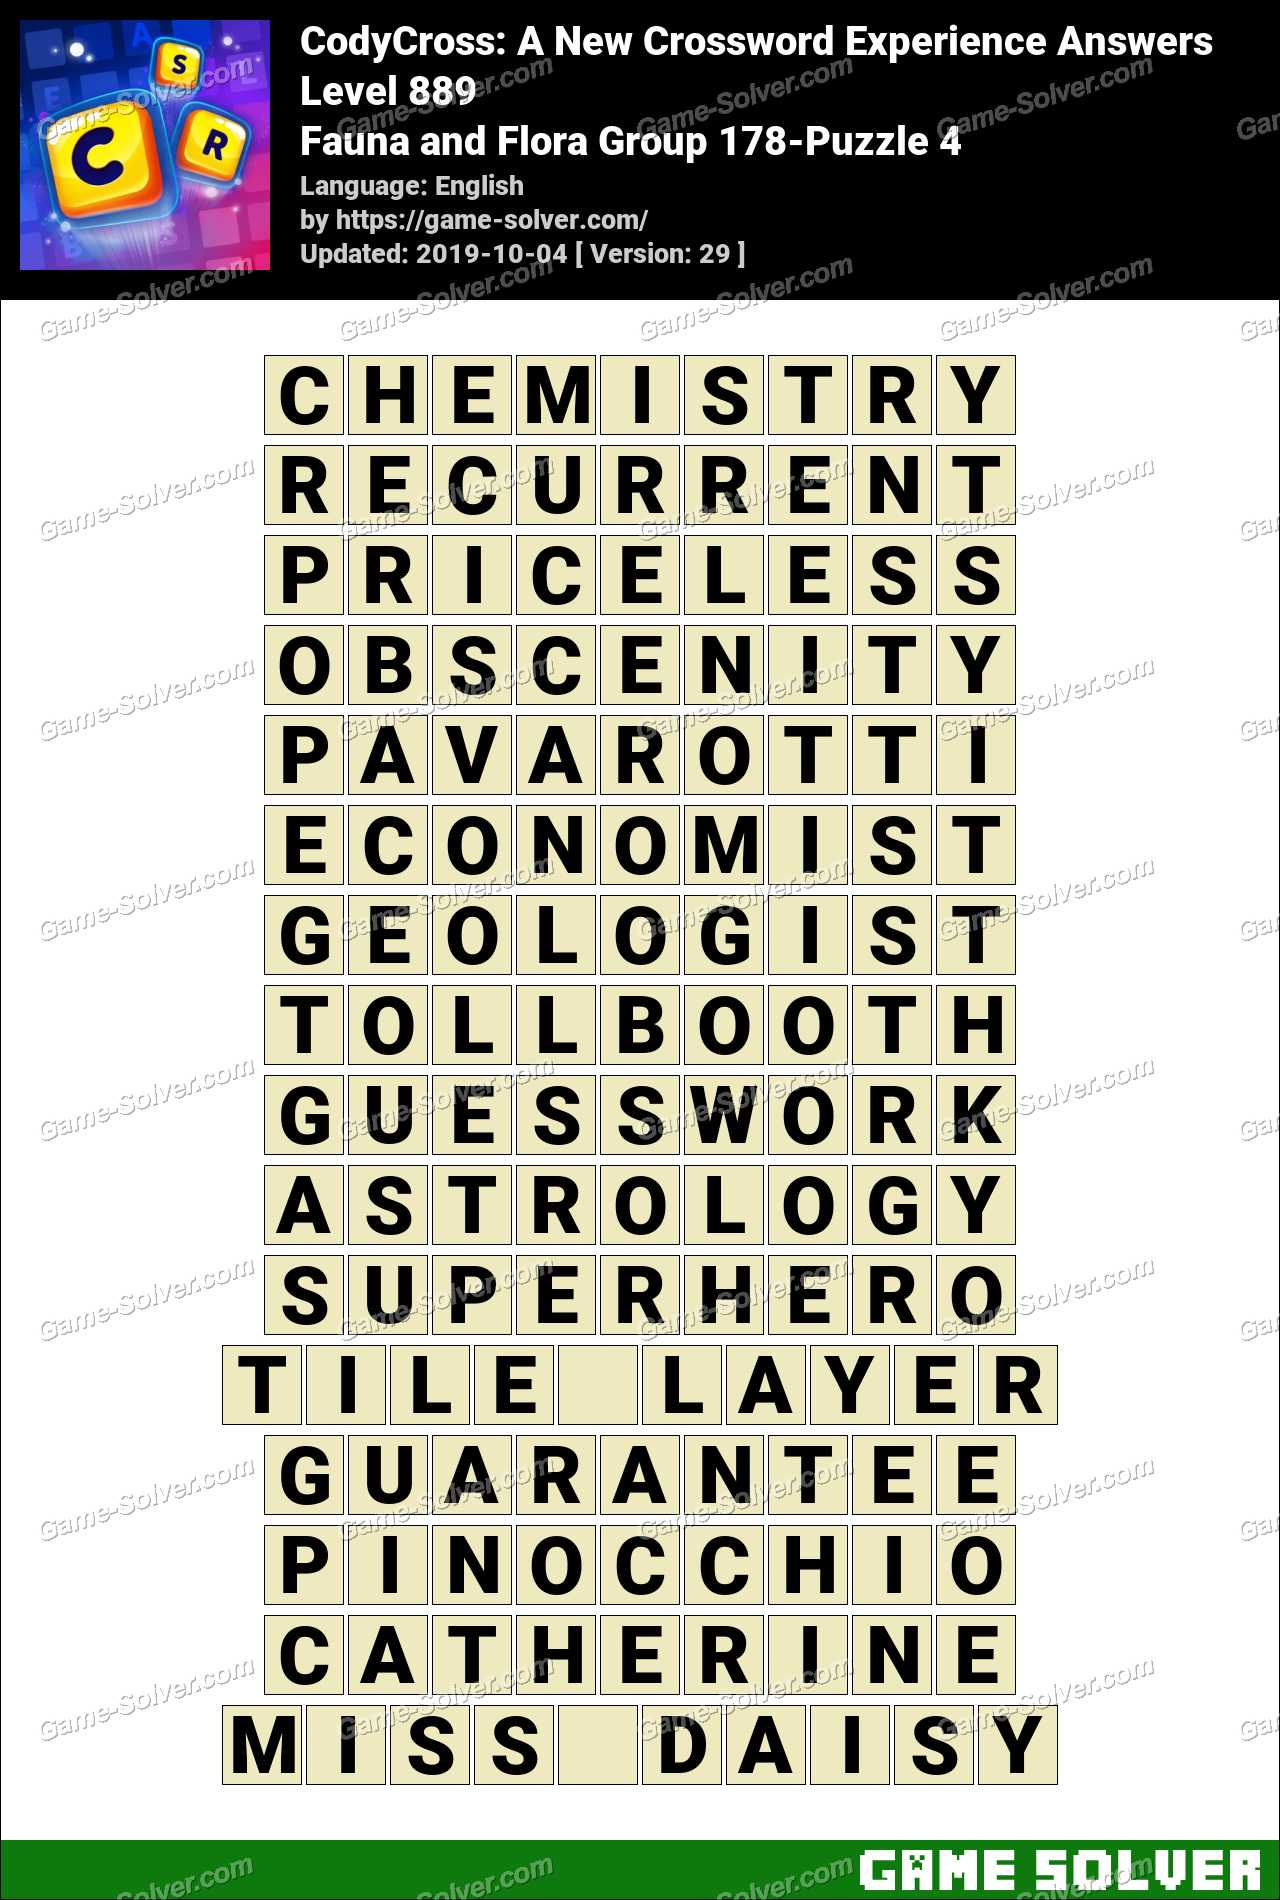 CodyCross Fauna and Flora Group 178-Puzzle 4 Answers